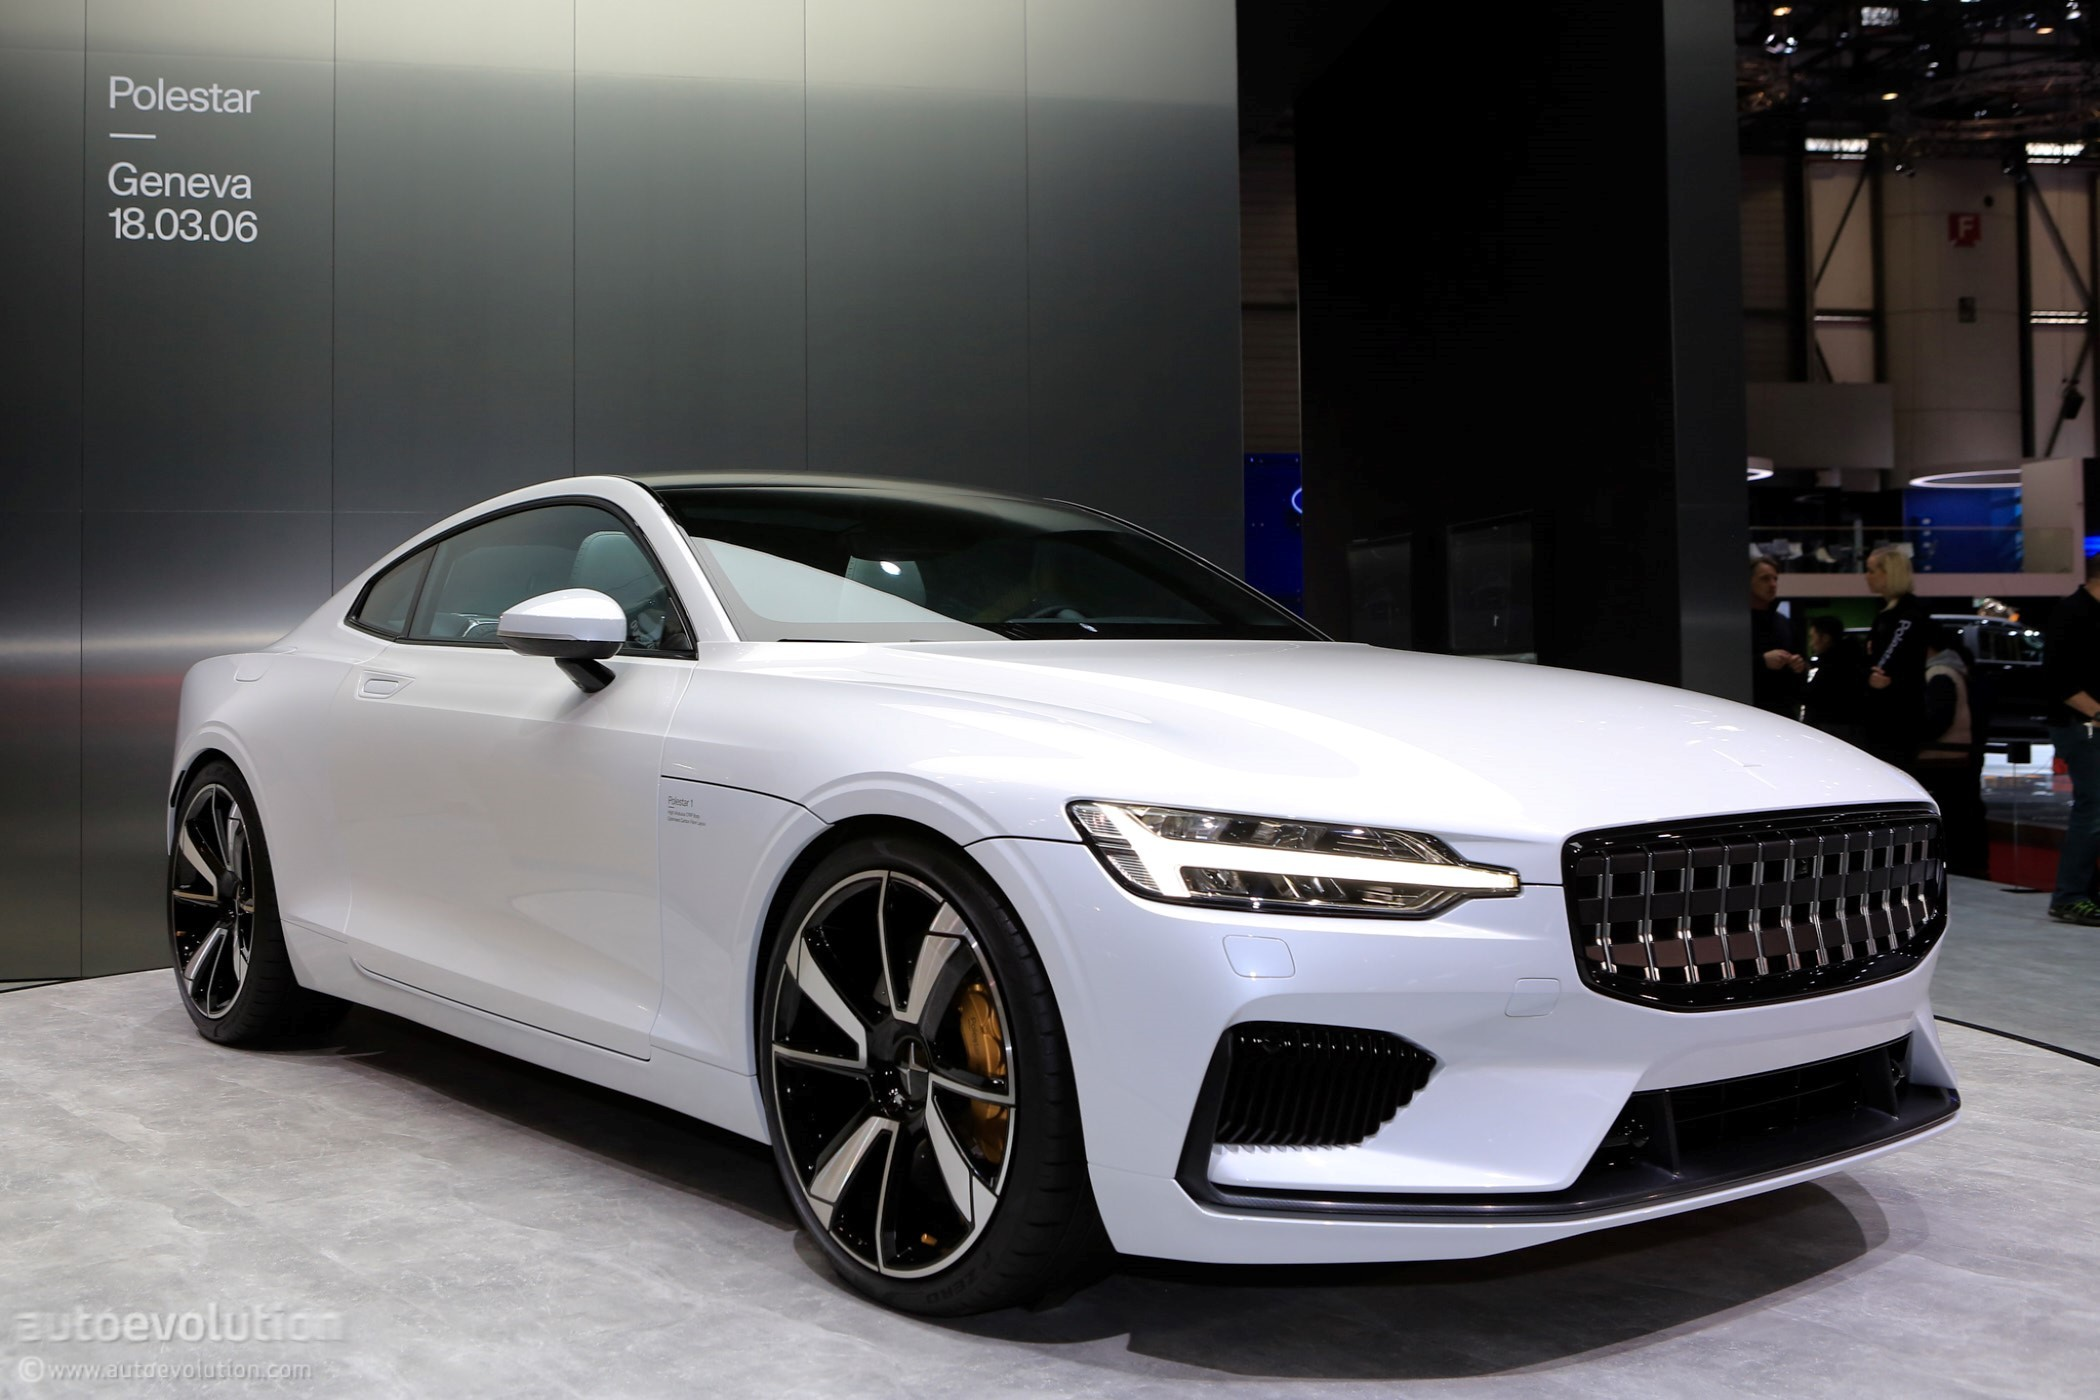 Polestar 1 Goes Live At The 2018 Geneva Motor Show Wearing